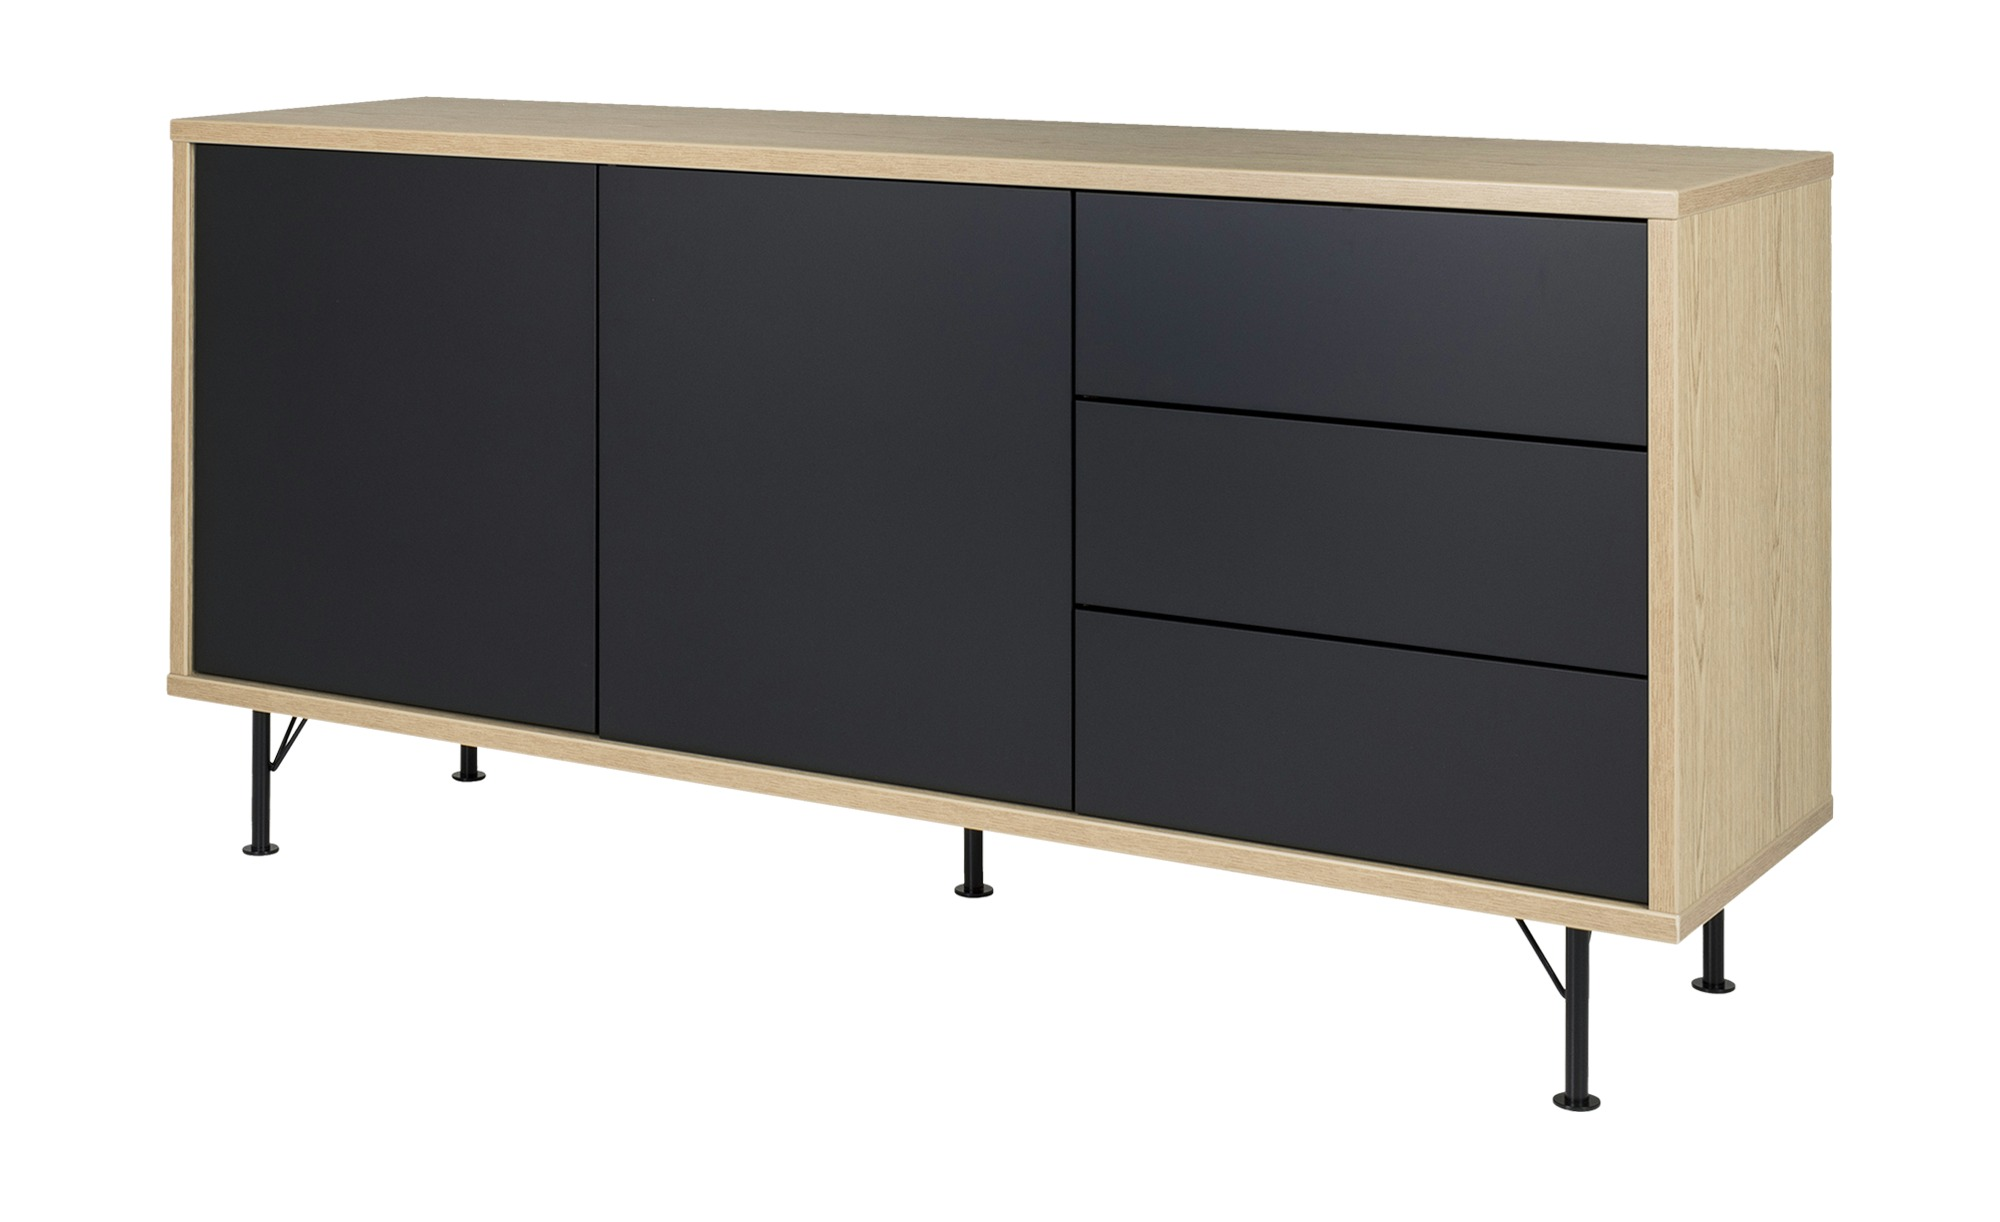 sideboard malte breite 164 cm h he 79 cm schwarz online kaufen bei woonio. Black Bedroom Furniture Sets. Home Design Ideas